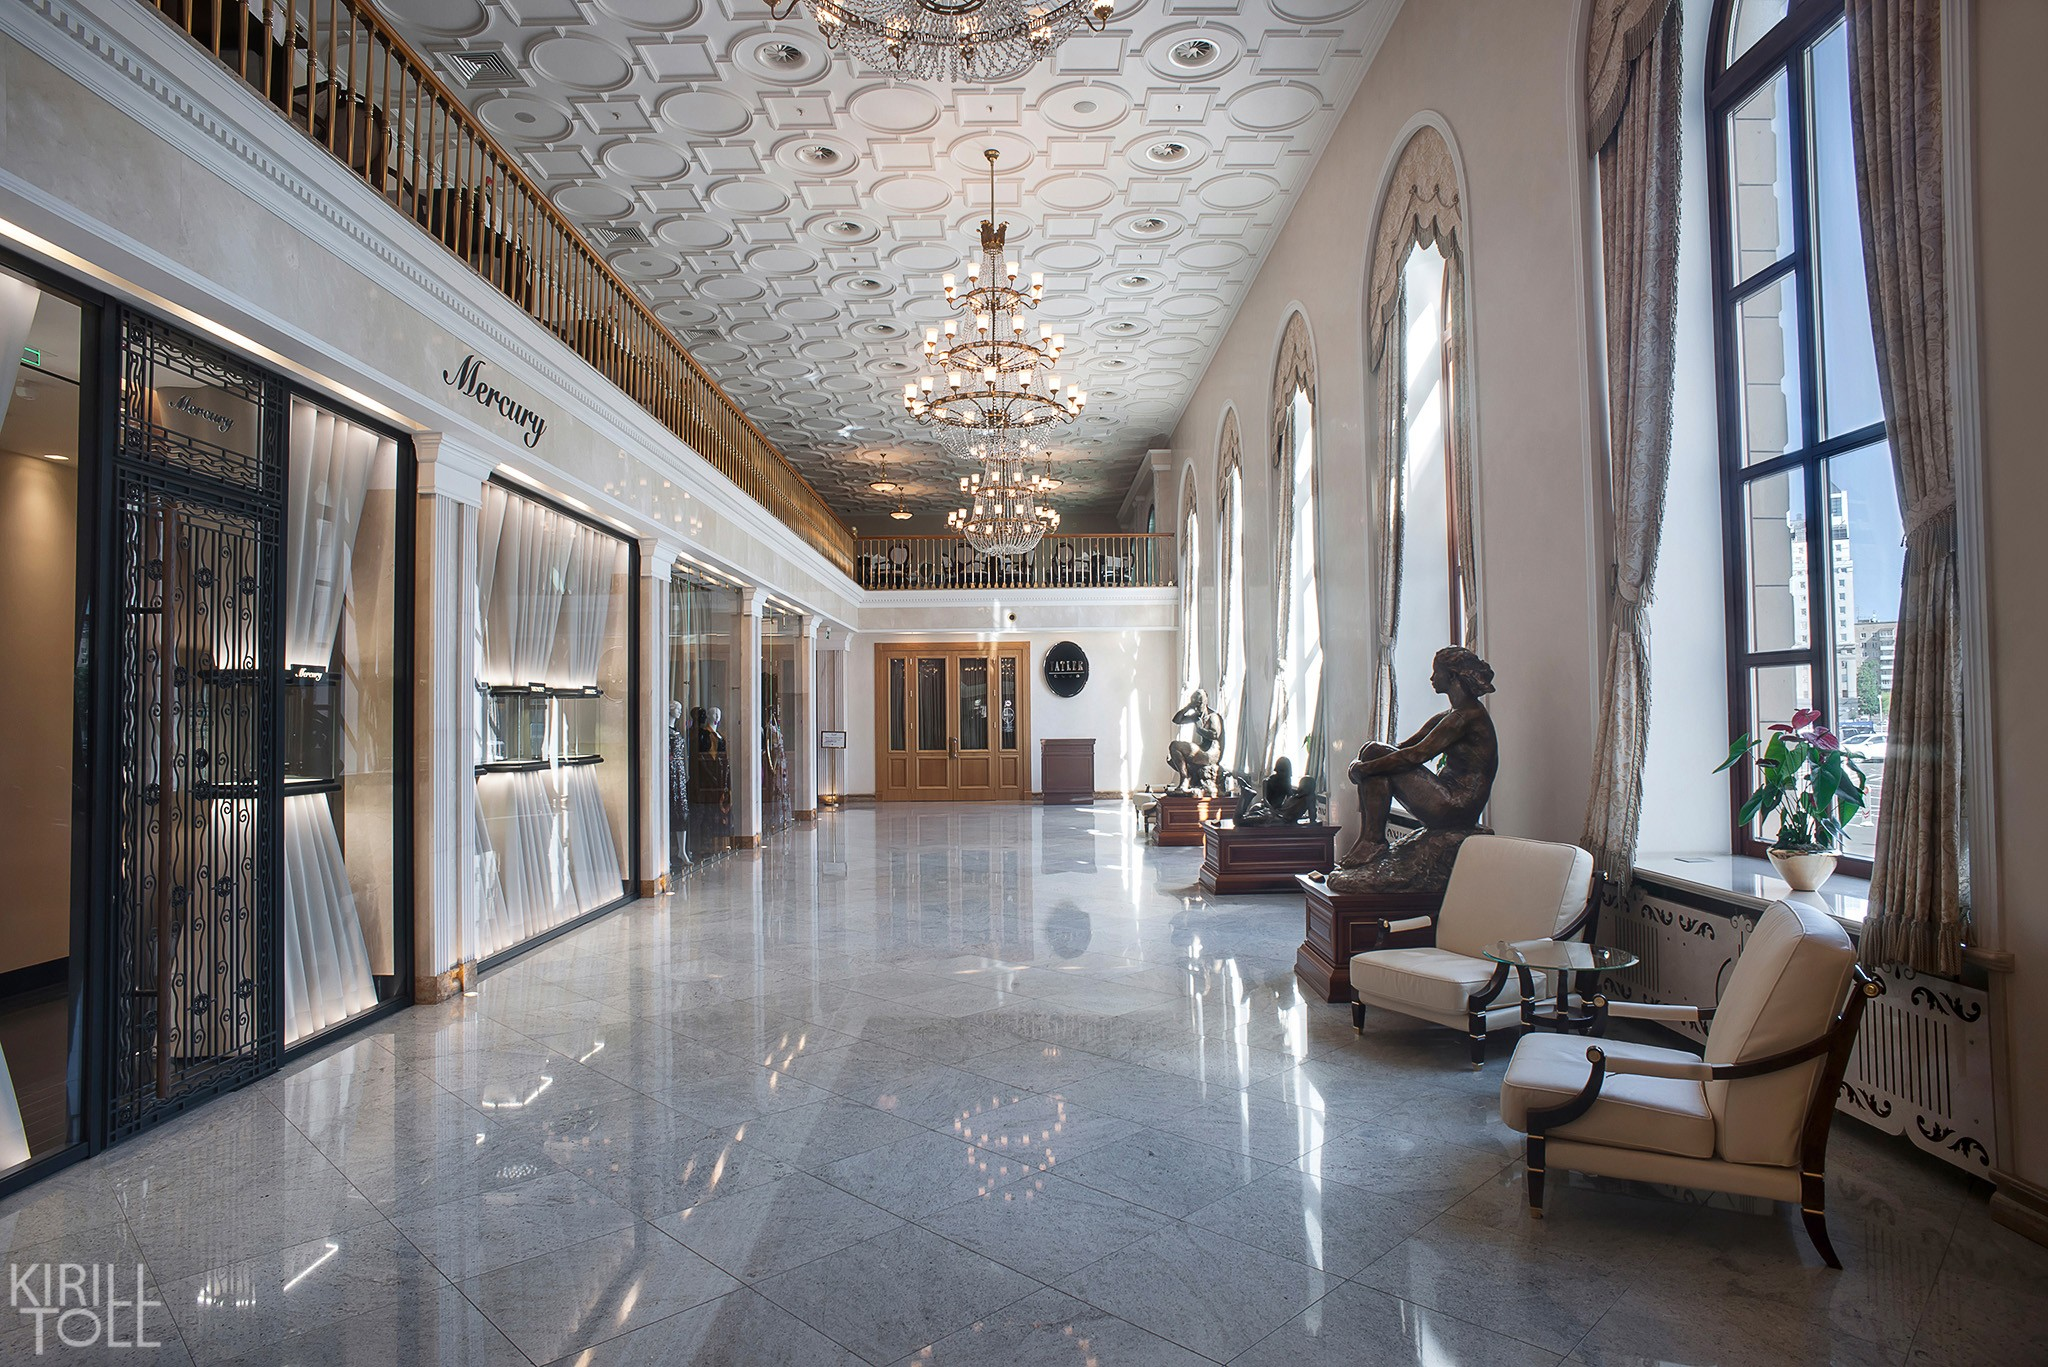 Hotel hall in Moscow interior photos